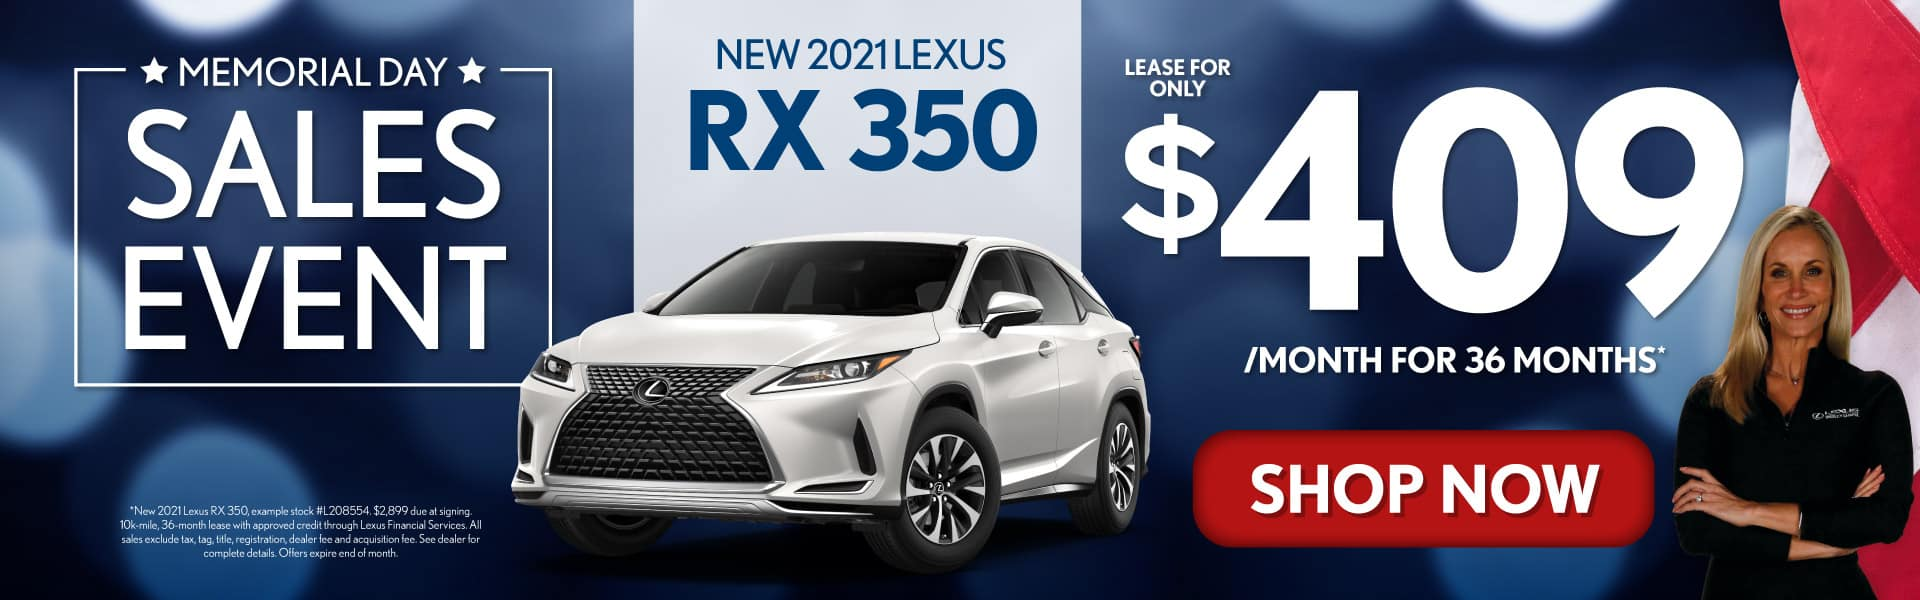 New 2021 Lexus RX 350 only $409/mo - SHOP NOW